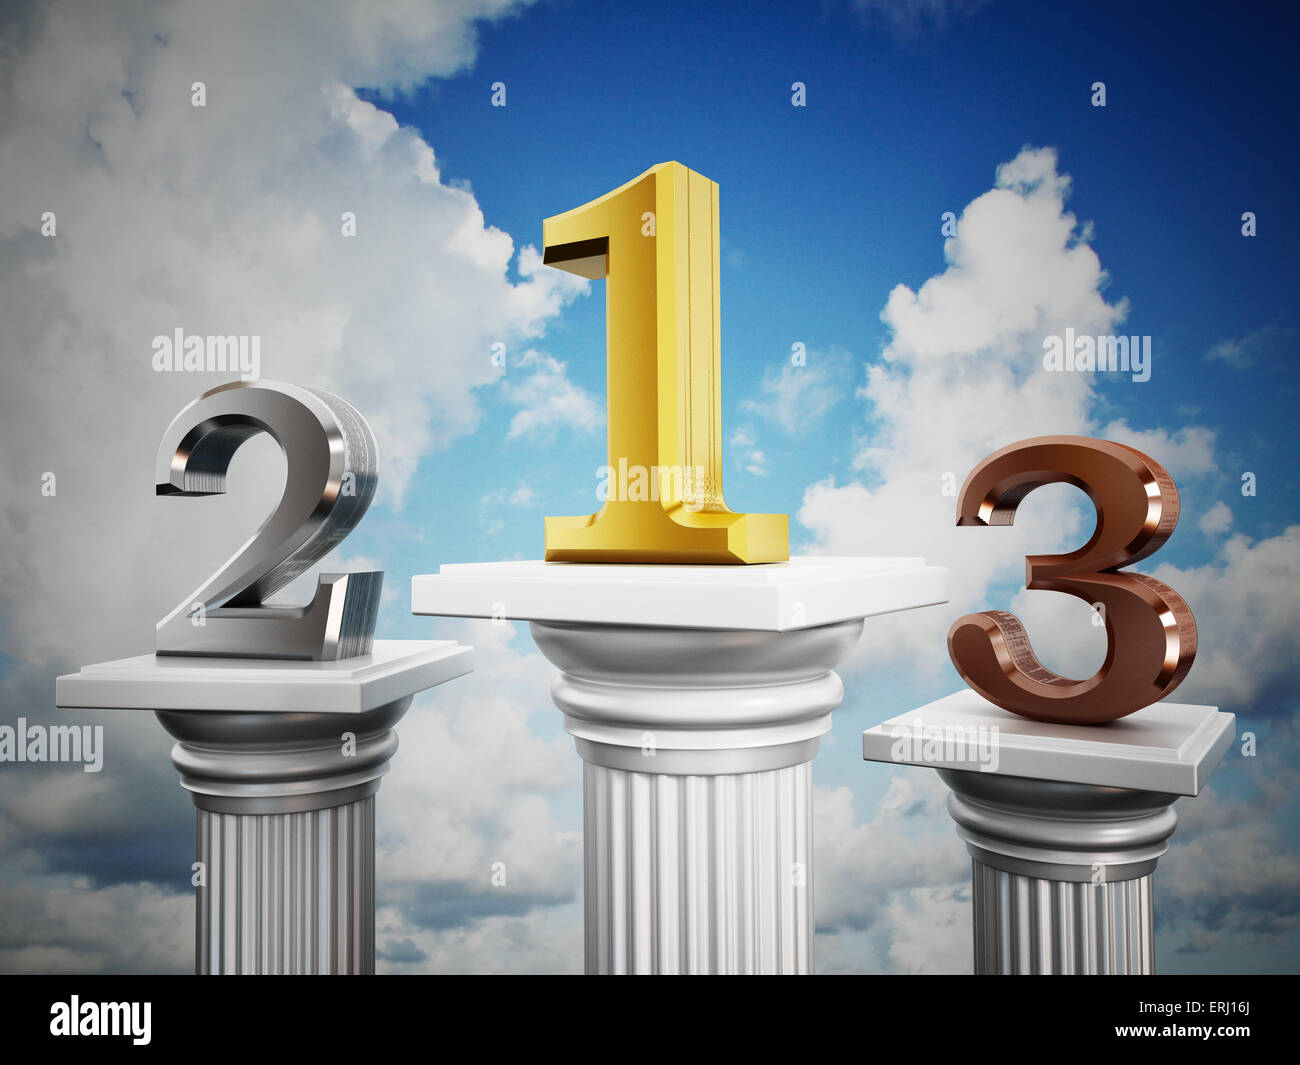 Number 1,2 and 3 standing on pillars. - Stock Image